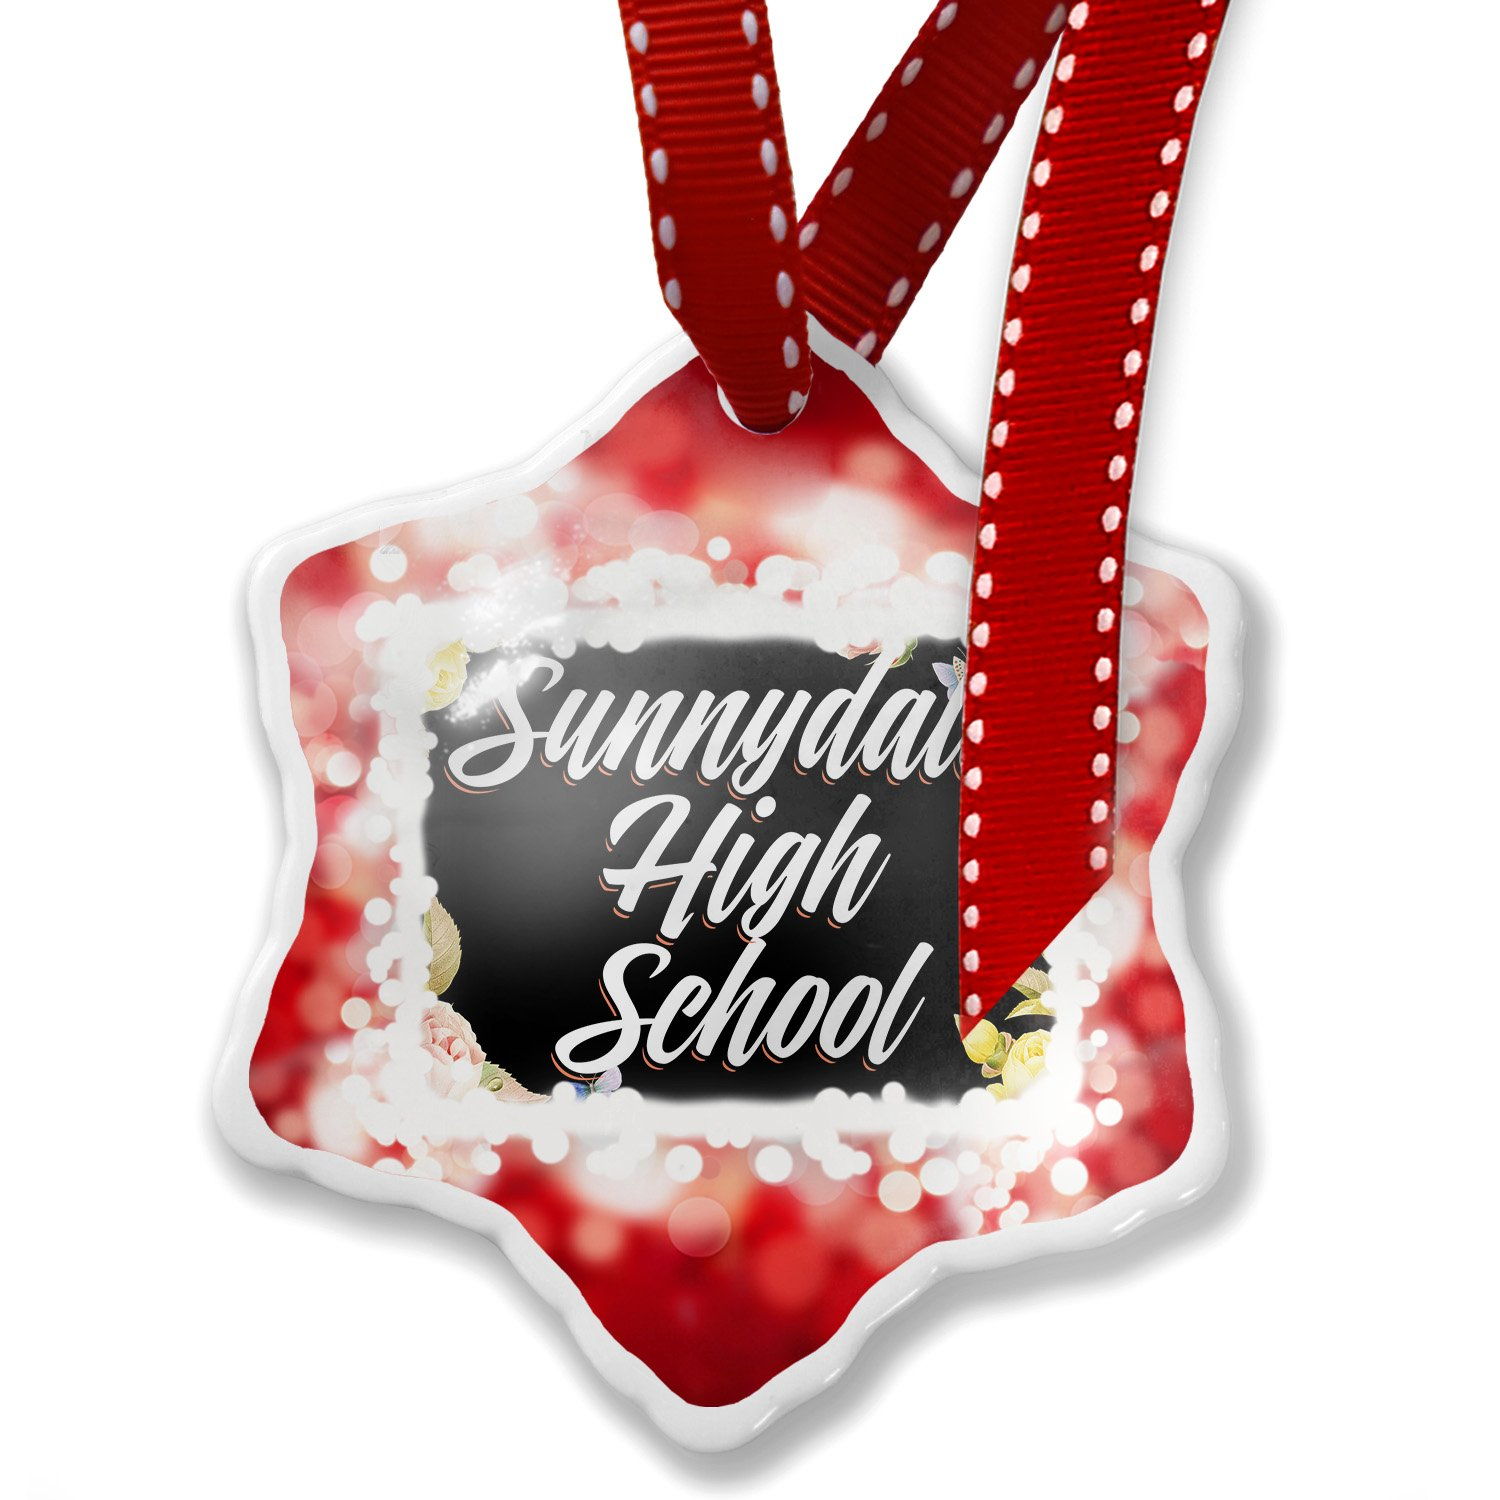 Christmas Ornament Floral Border Sunnydale High School, red - Neonblond